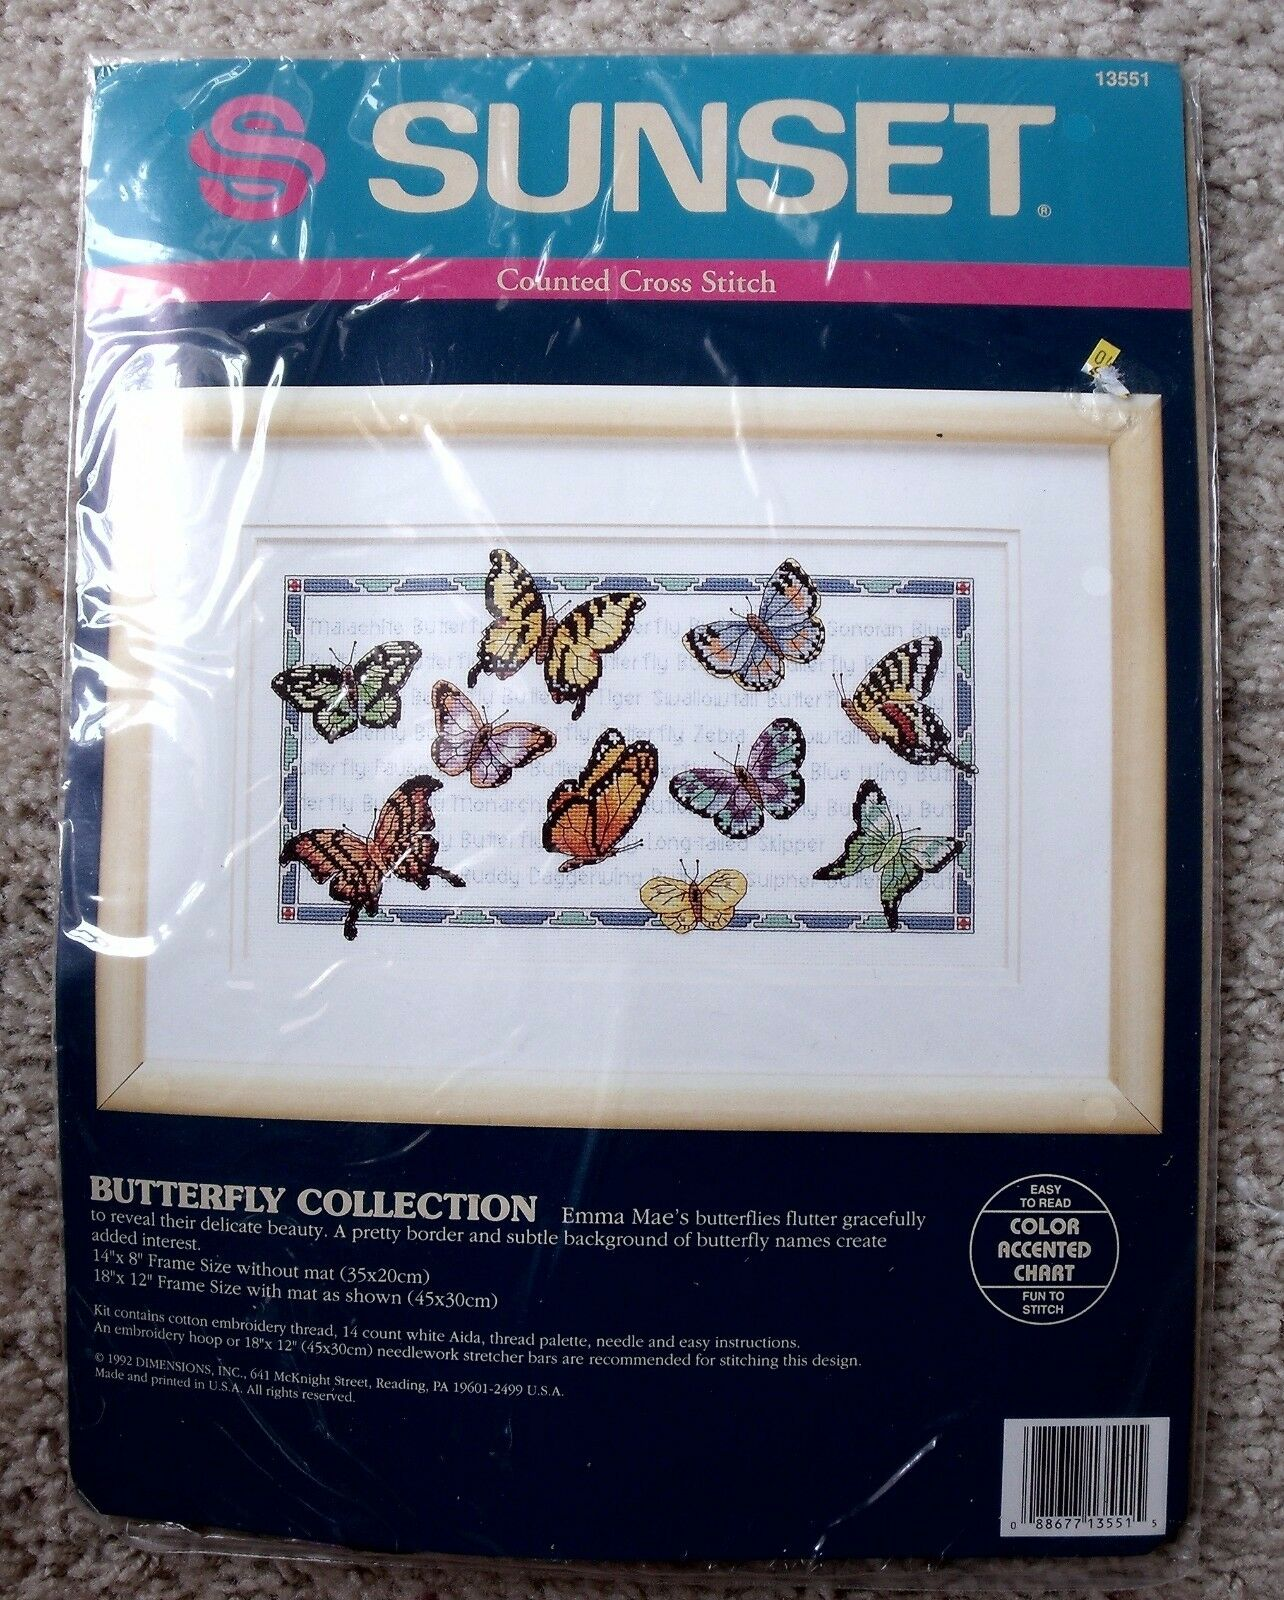 Butterfly Collection Counted Cross Stitch Kit 14x8 Sunset